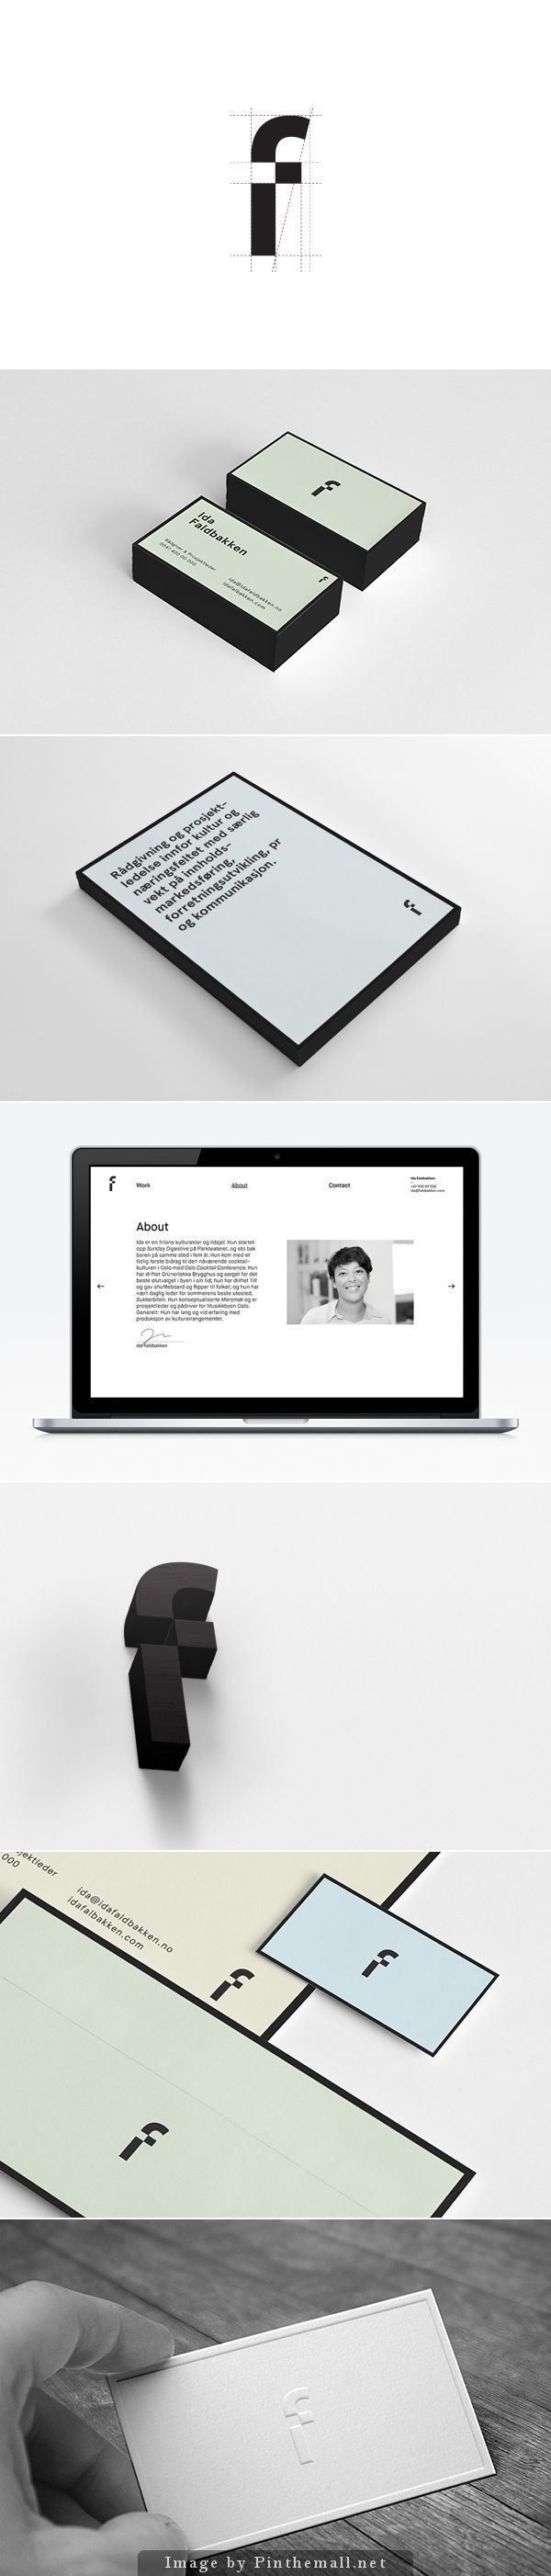 Ida Faldbakken is a freelance project manager and concept developer in Oslo, Norway. She has worked with a range of different project the past years, including Øyafestivalen.  The identity is intended to reflect Ida's ability to adapt to all kinds of projects, ranging from music to business development, art or marketing. #branding #idafaldbakken